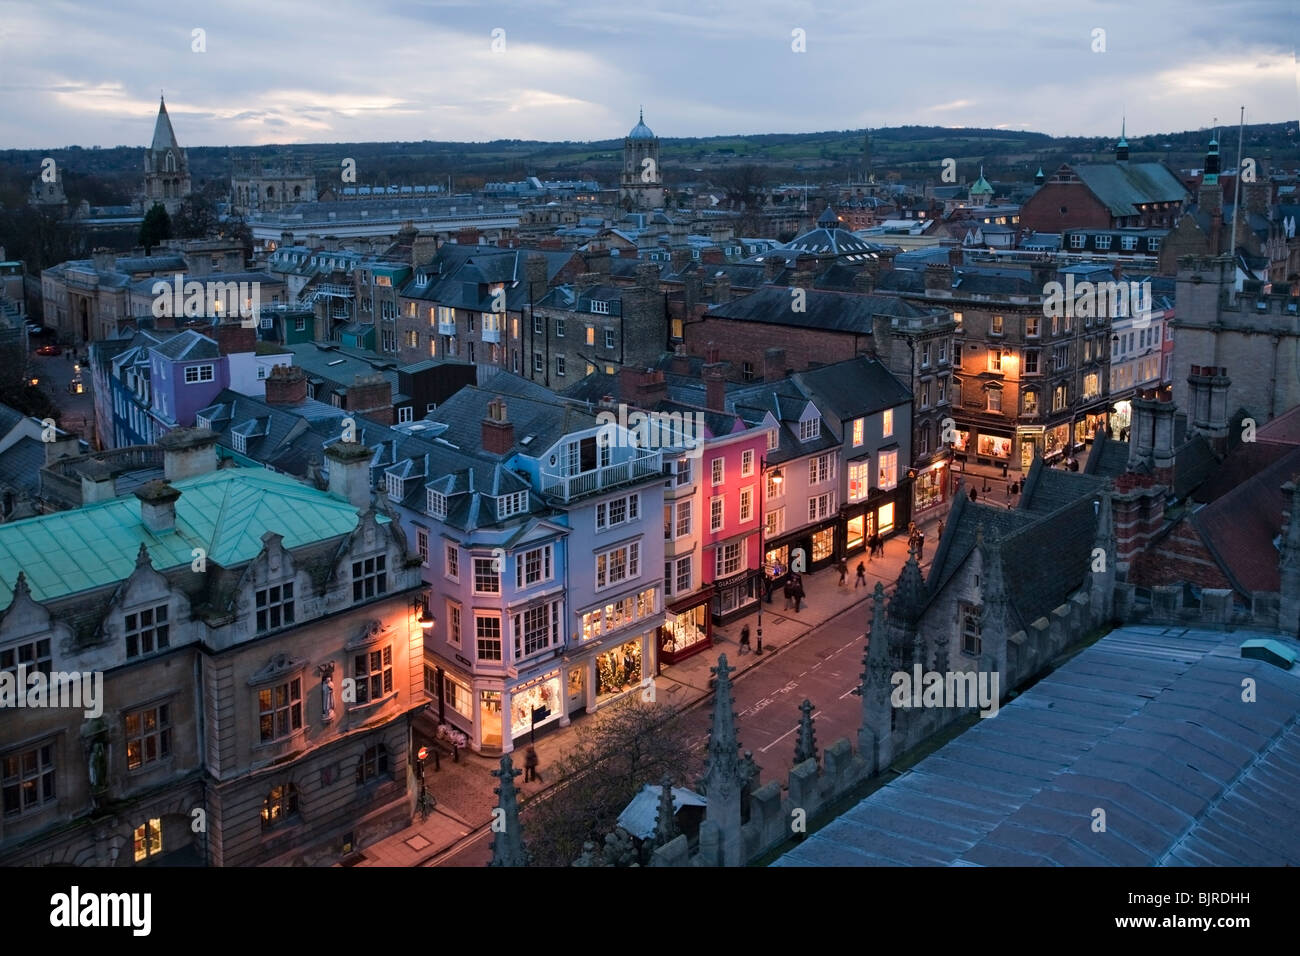 View of Oxford High Street and city rooftops from the viewing balcony of St Mary the Virgin Church in Radcliffe - Stock Image